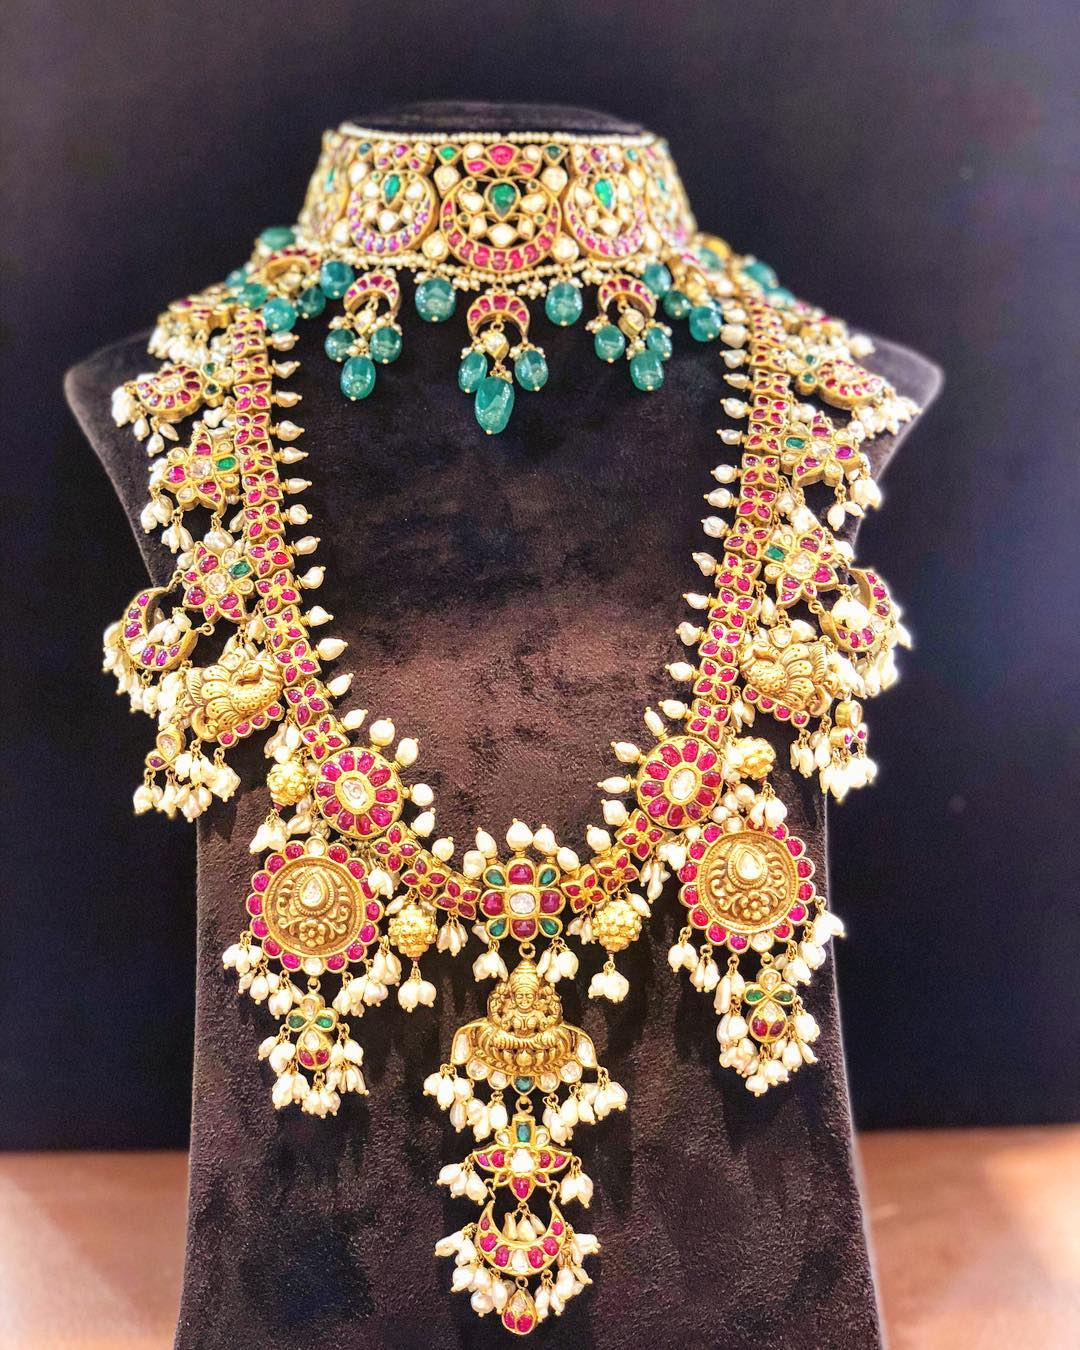 Decorative Bridal Collections From Mangatrai 36jubilee Hills